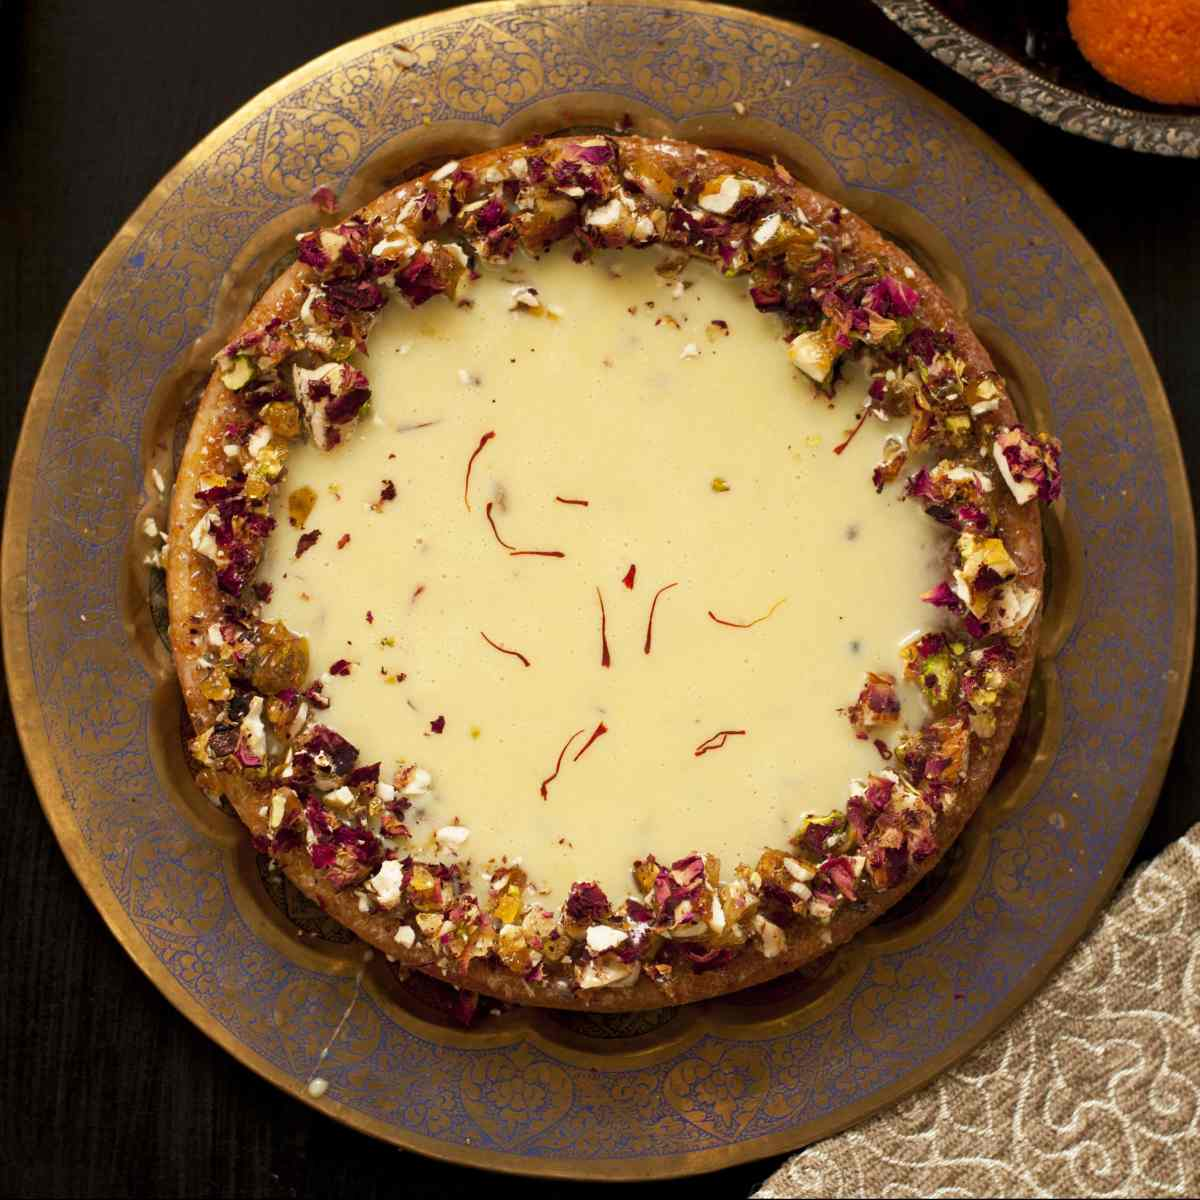 Saffron Cardamom Milk Cake with White Chocolate Ganache